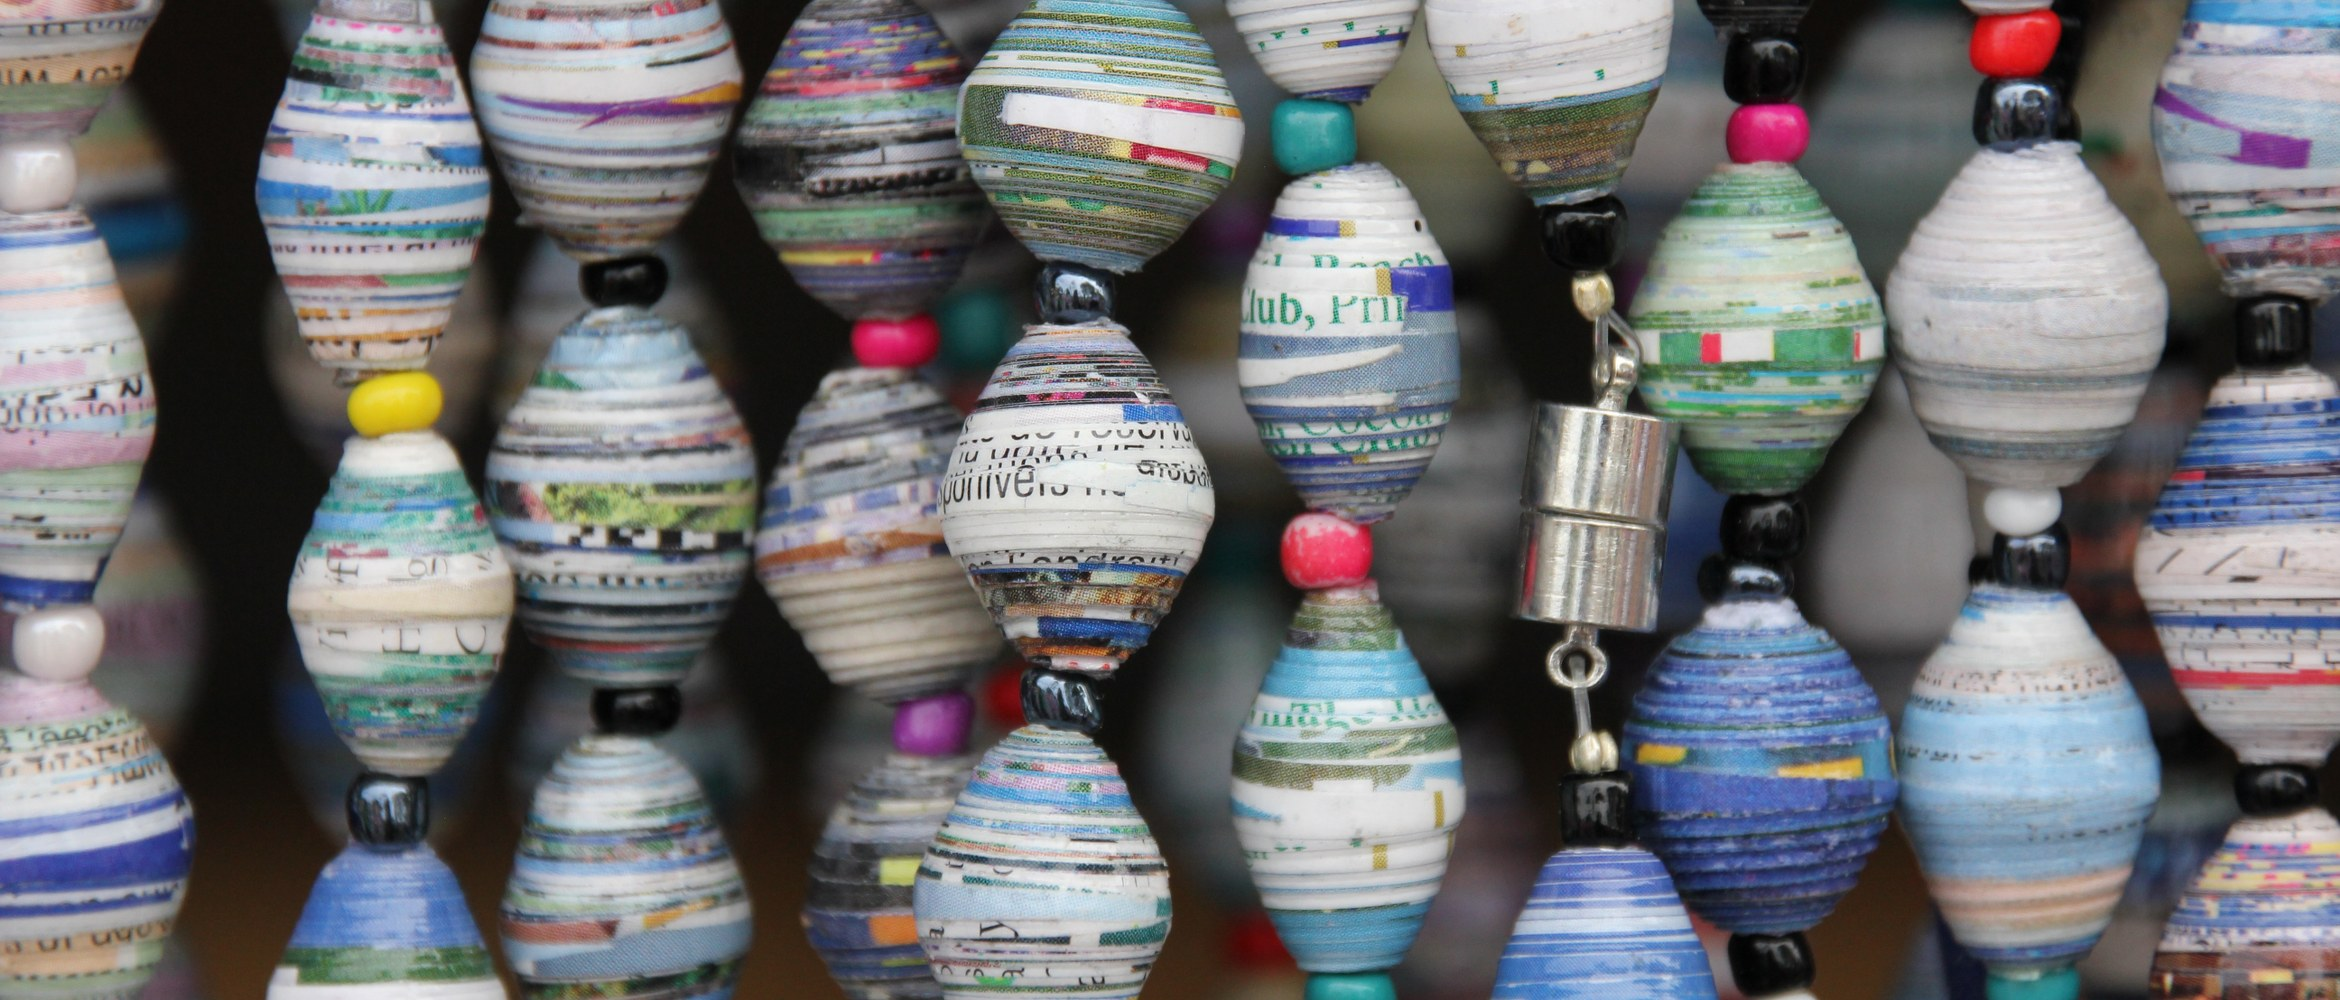 Used paper has been recycled and repurposed to craft environmentally friendly sustainable hanging decorations